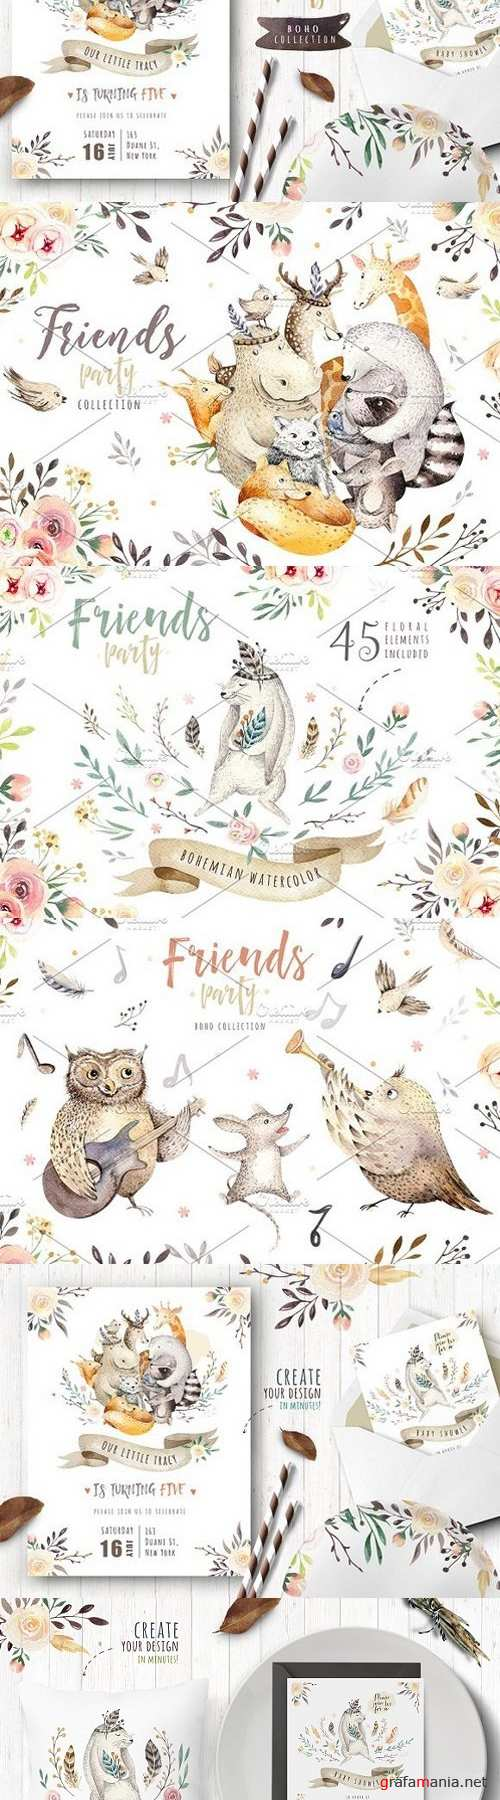 Friends party.Boho collection I 1685623